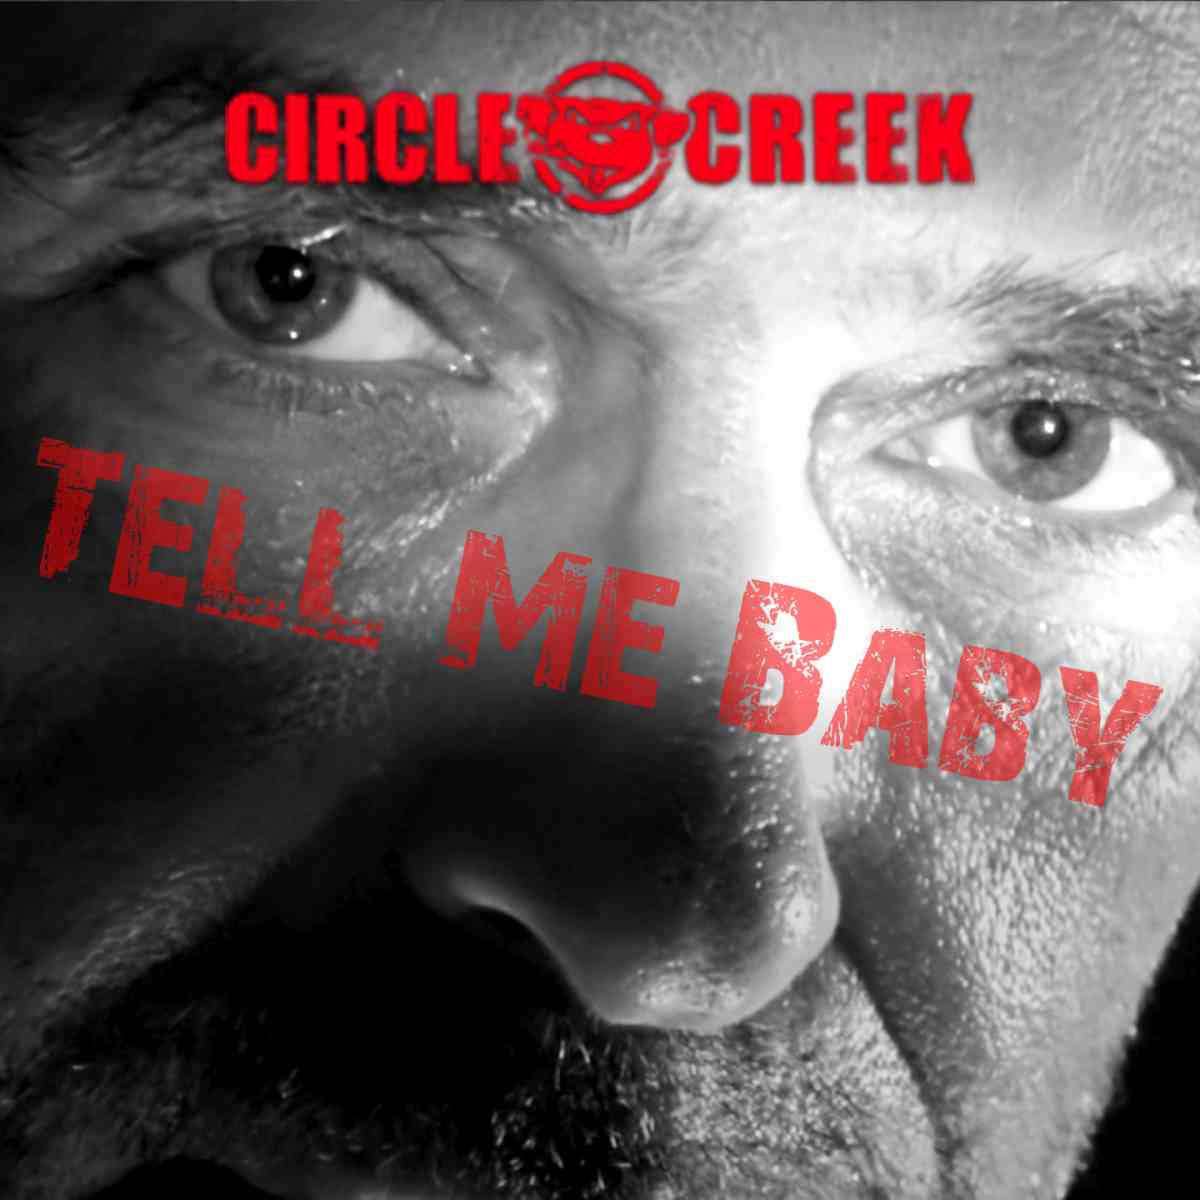 Circle Creek - Tell Me Baby - album cover